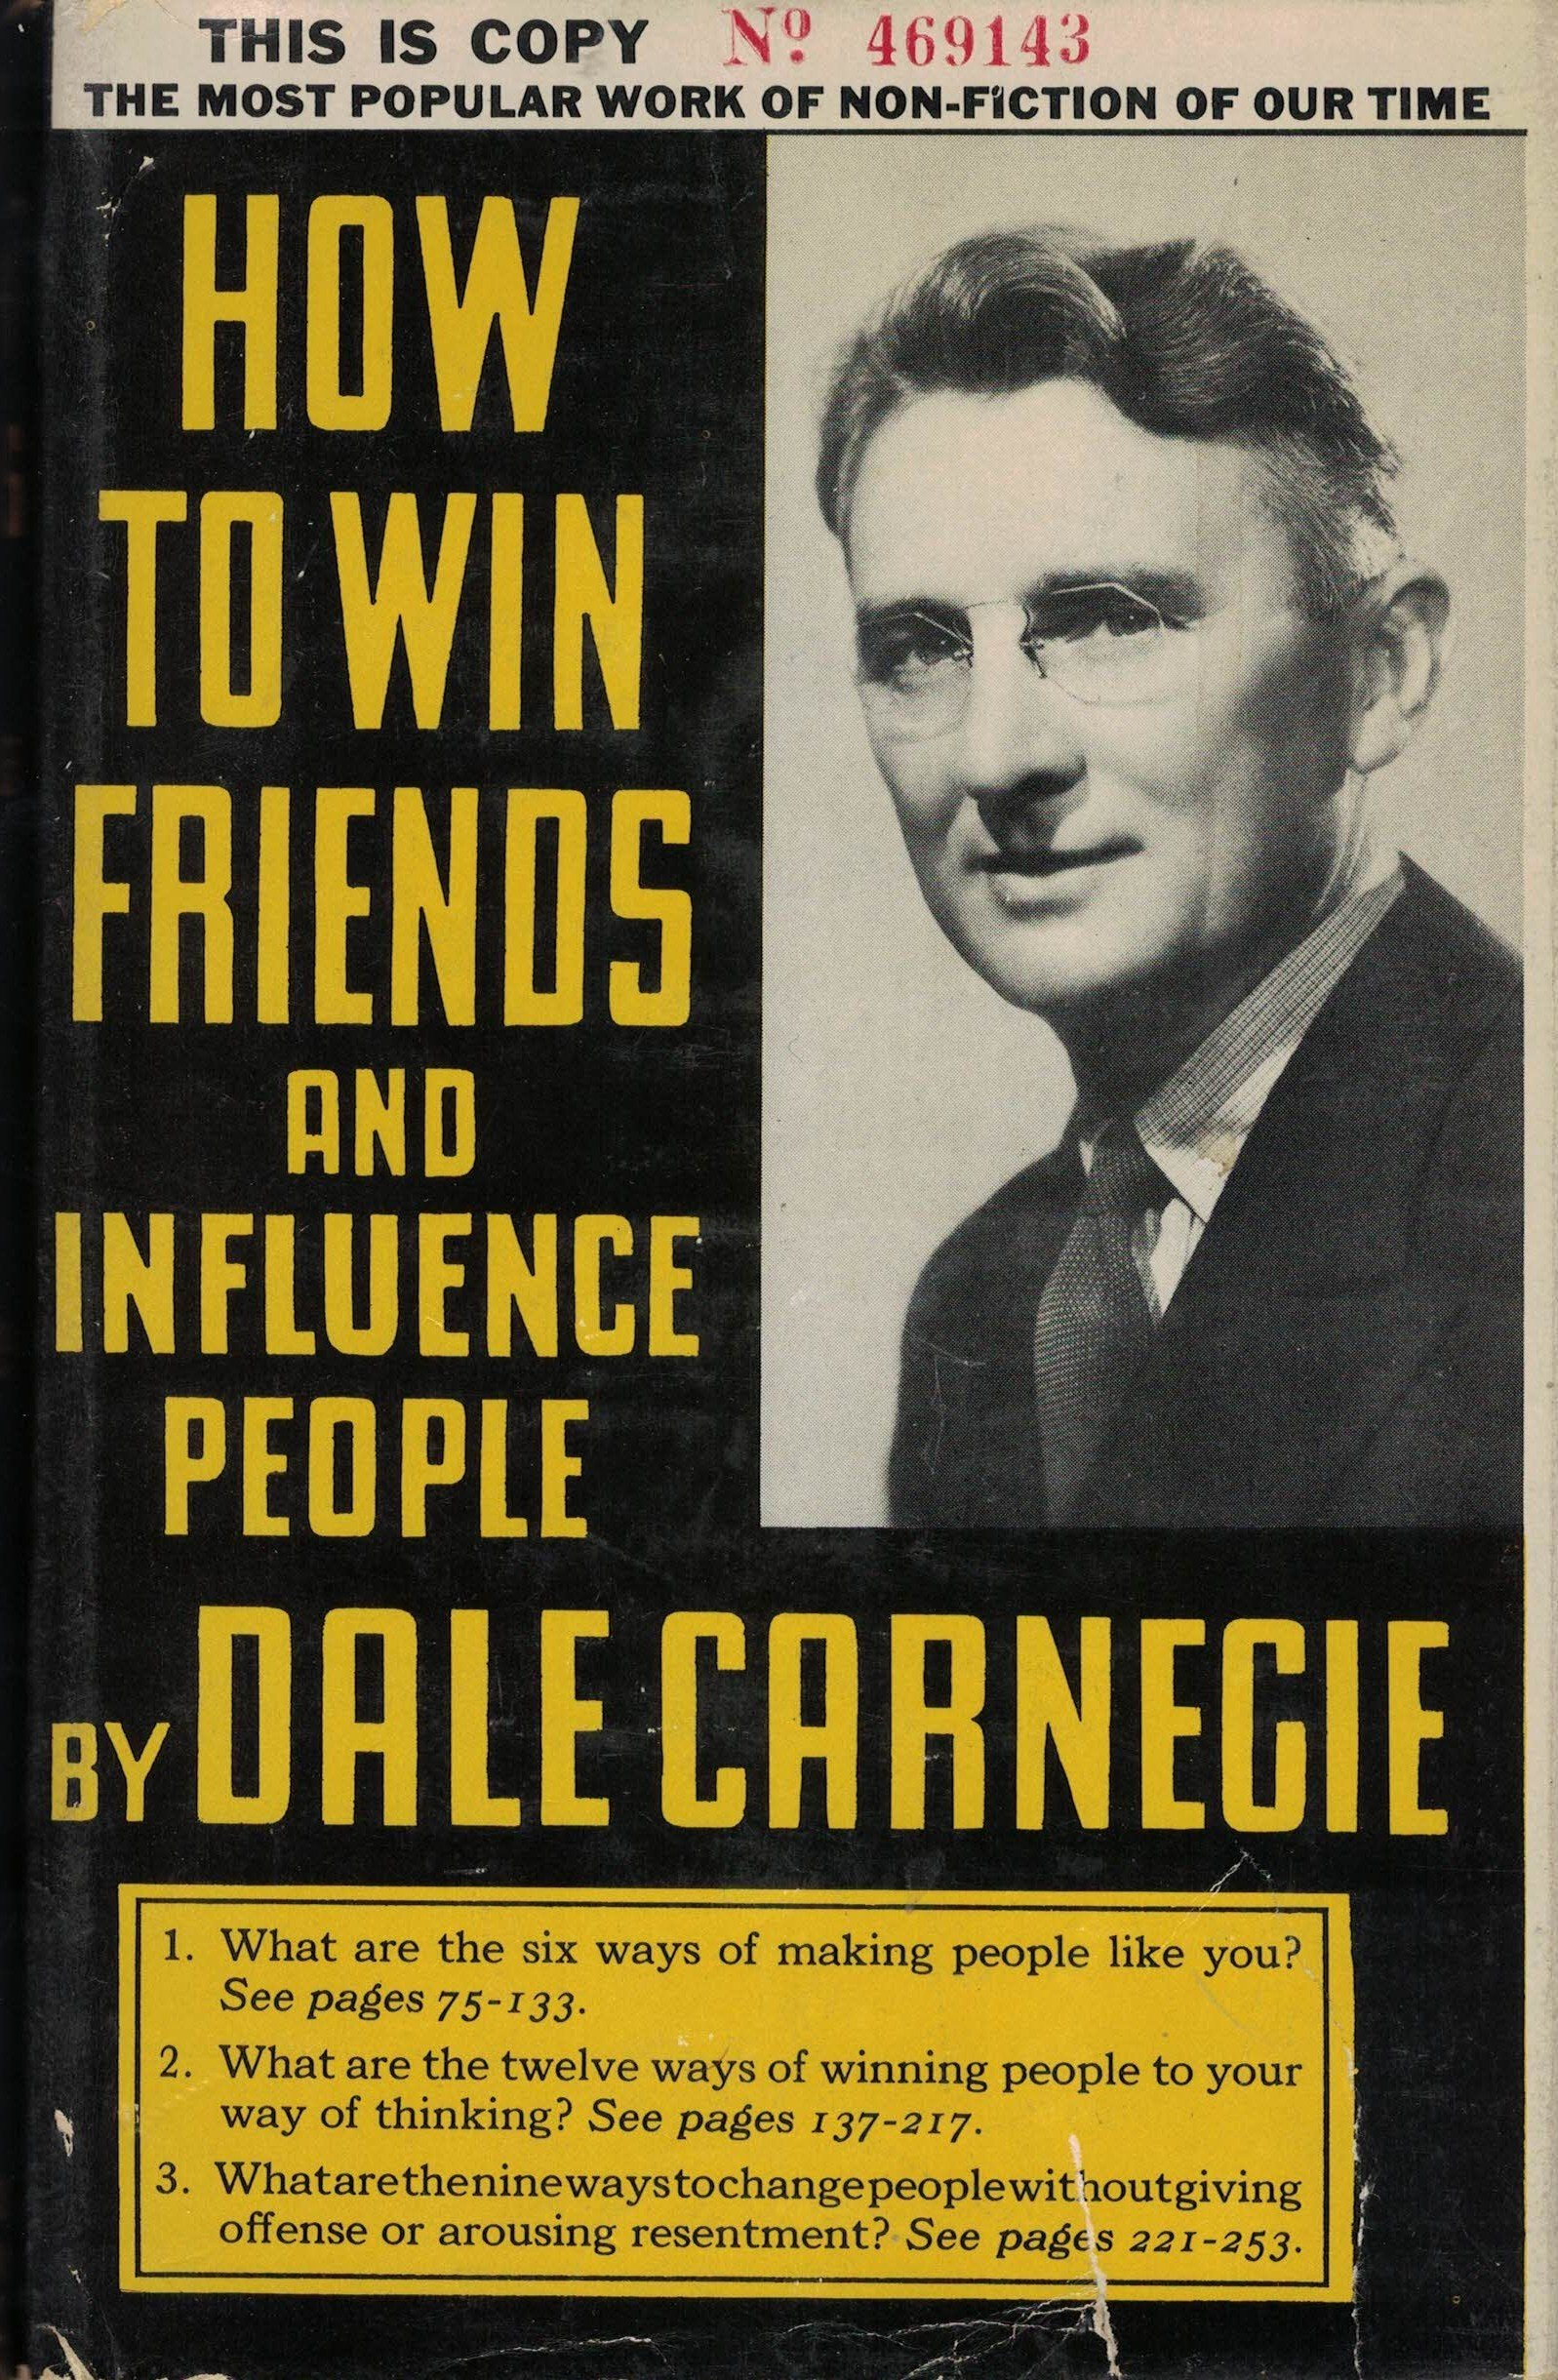 How To Win Friends And Influence People By Dale Carnegie Hardback 1937:  Dale Carnegie, Lowell Thomas: Amazon: Books